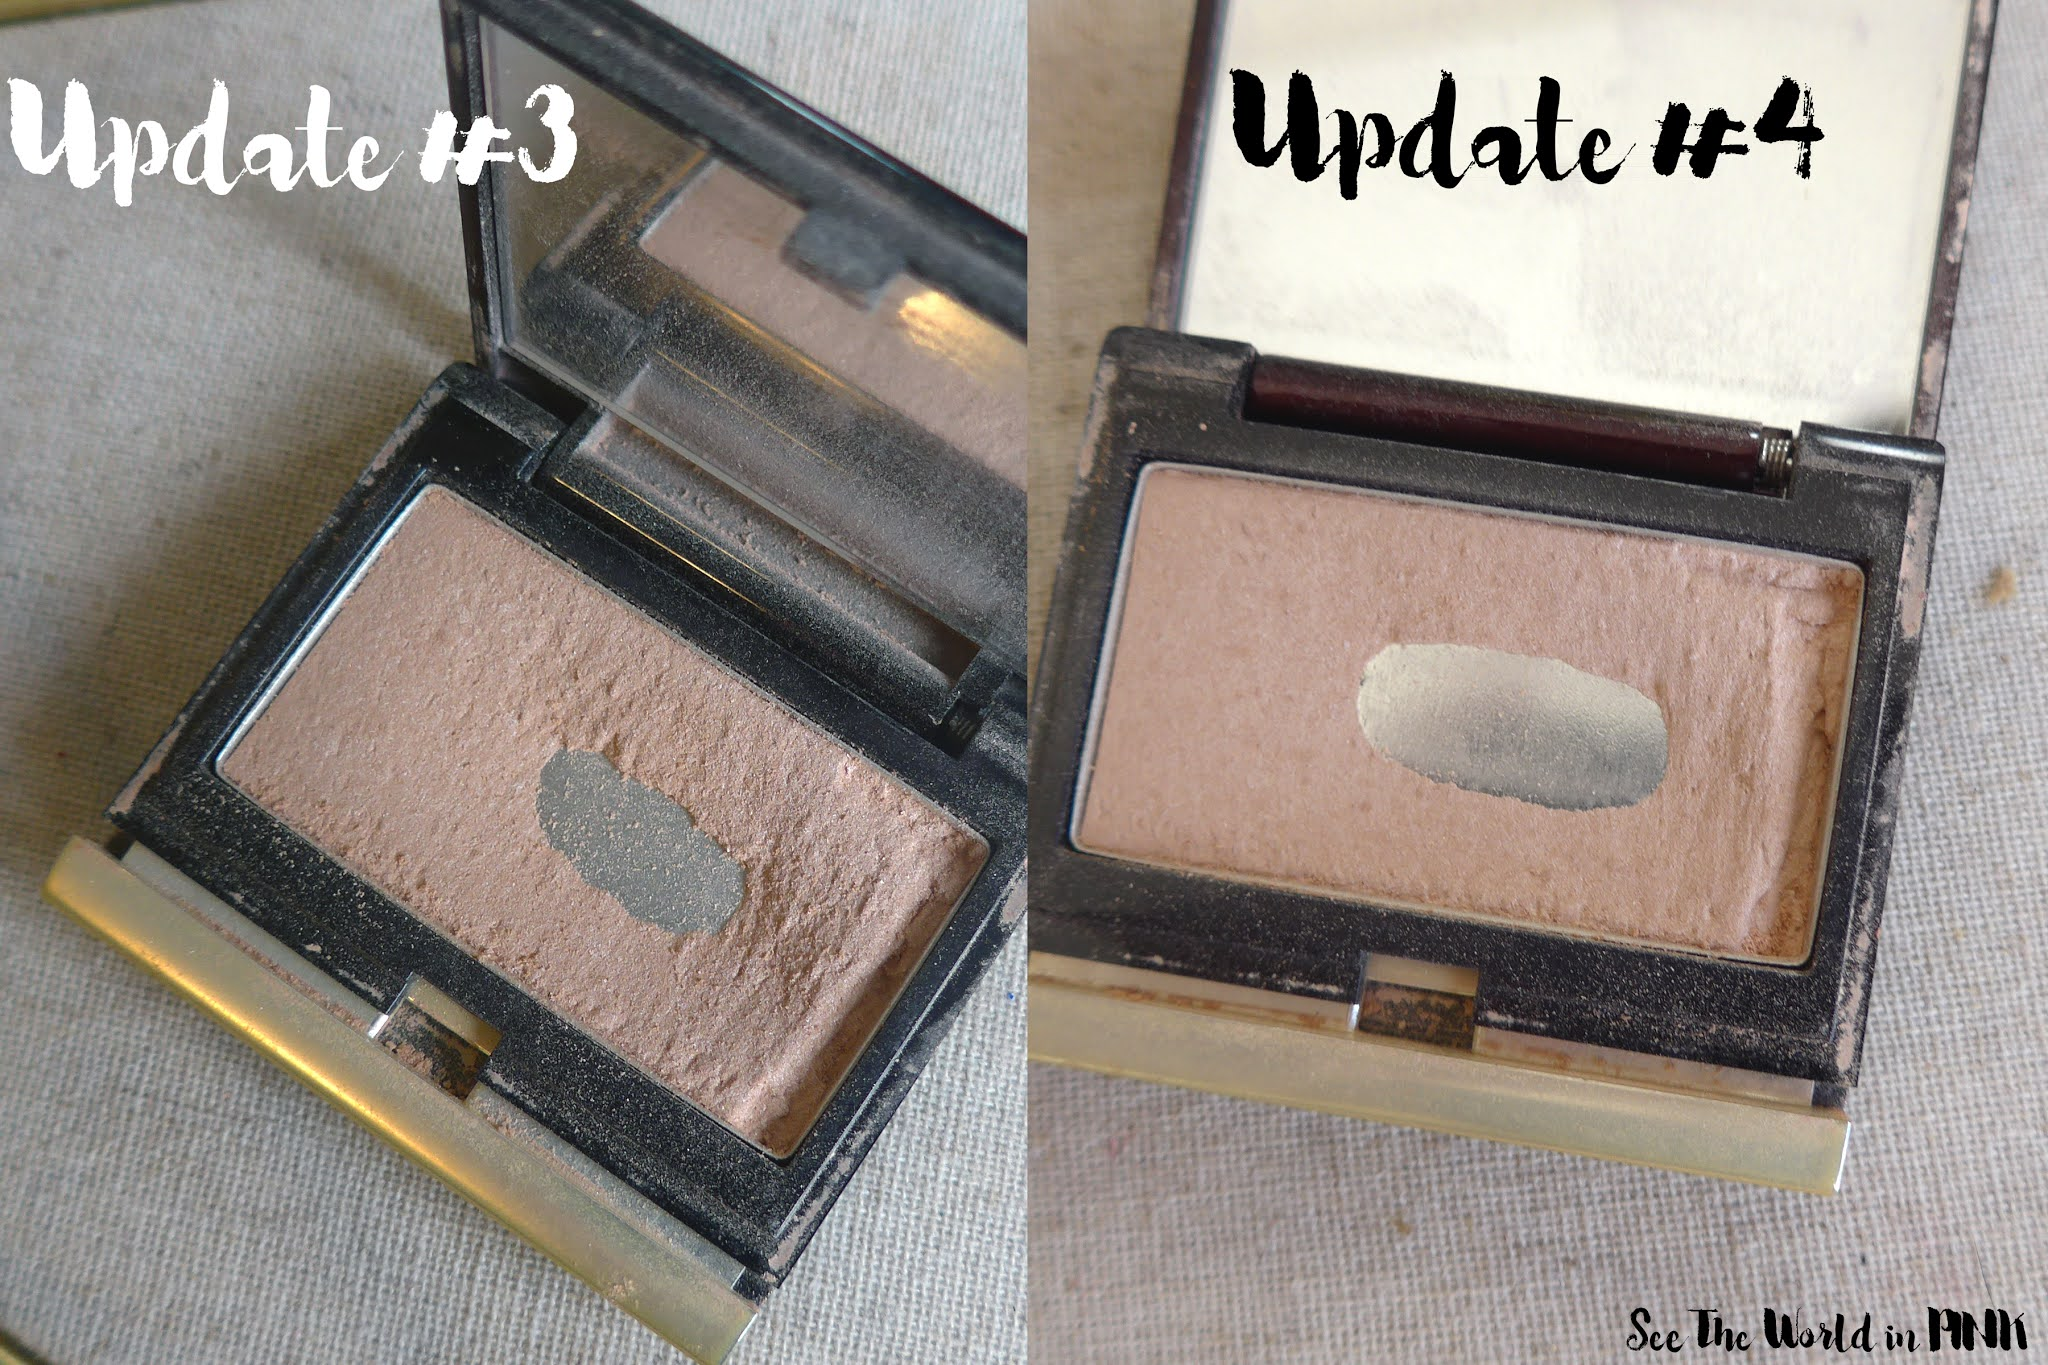 20 in 2020 Project Pan - Update #4